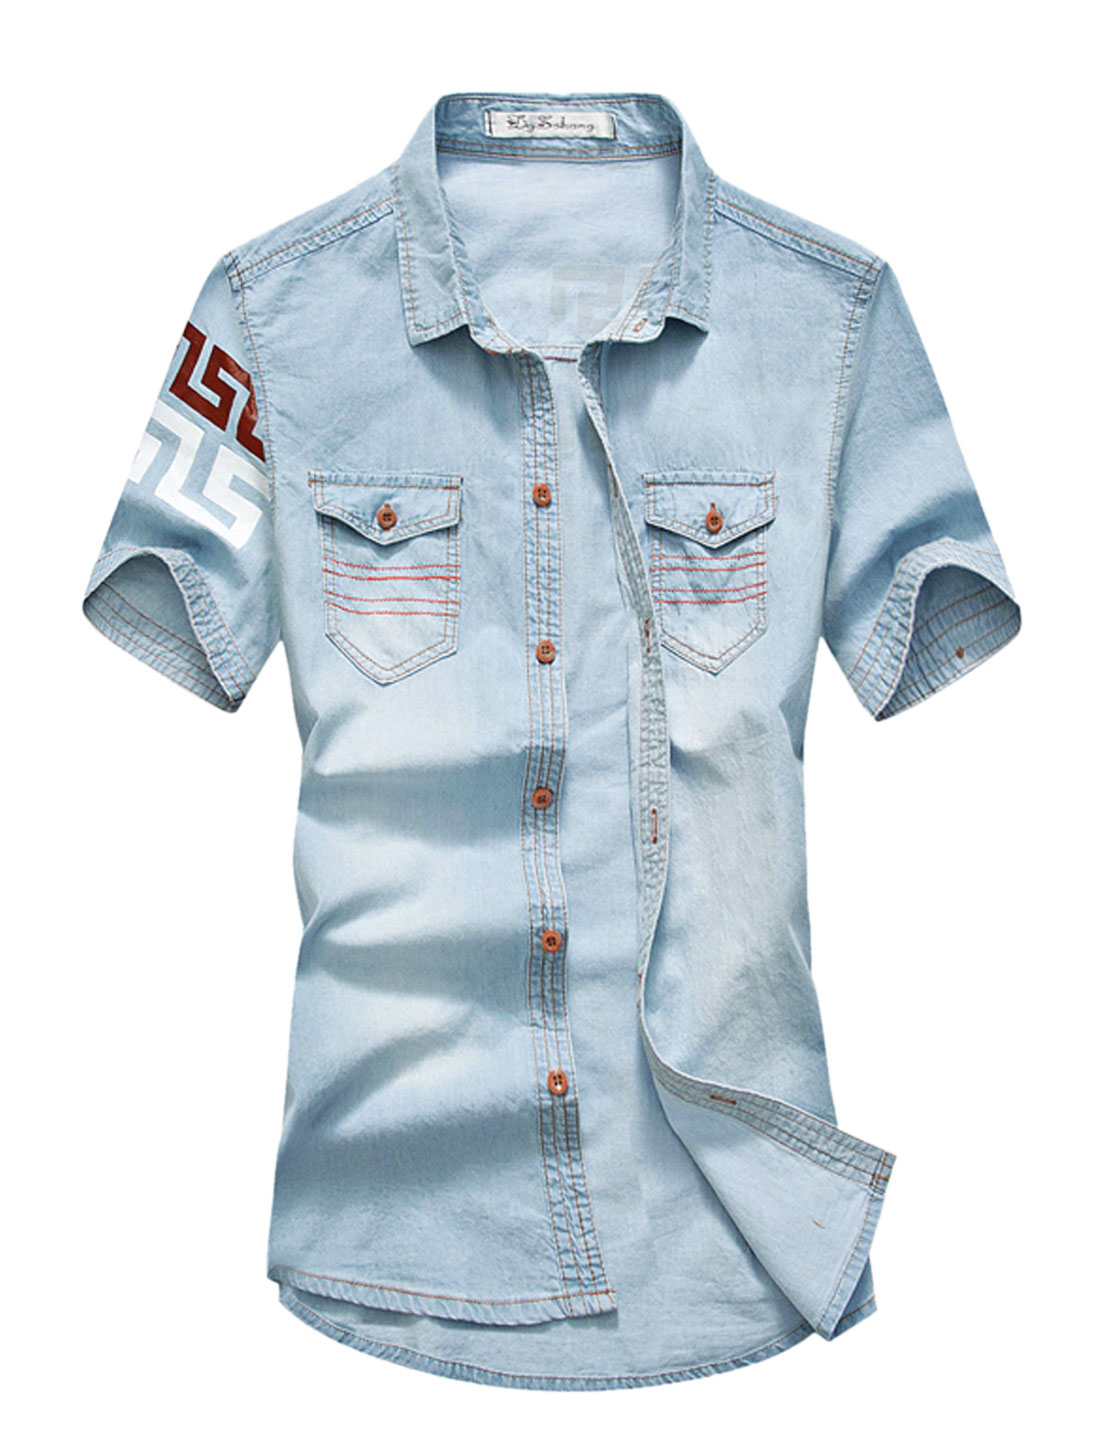 Men Novelty Prints Two Flap Chest Pockets Denim Shirt Light Blues M